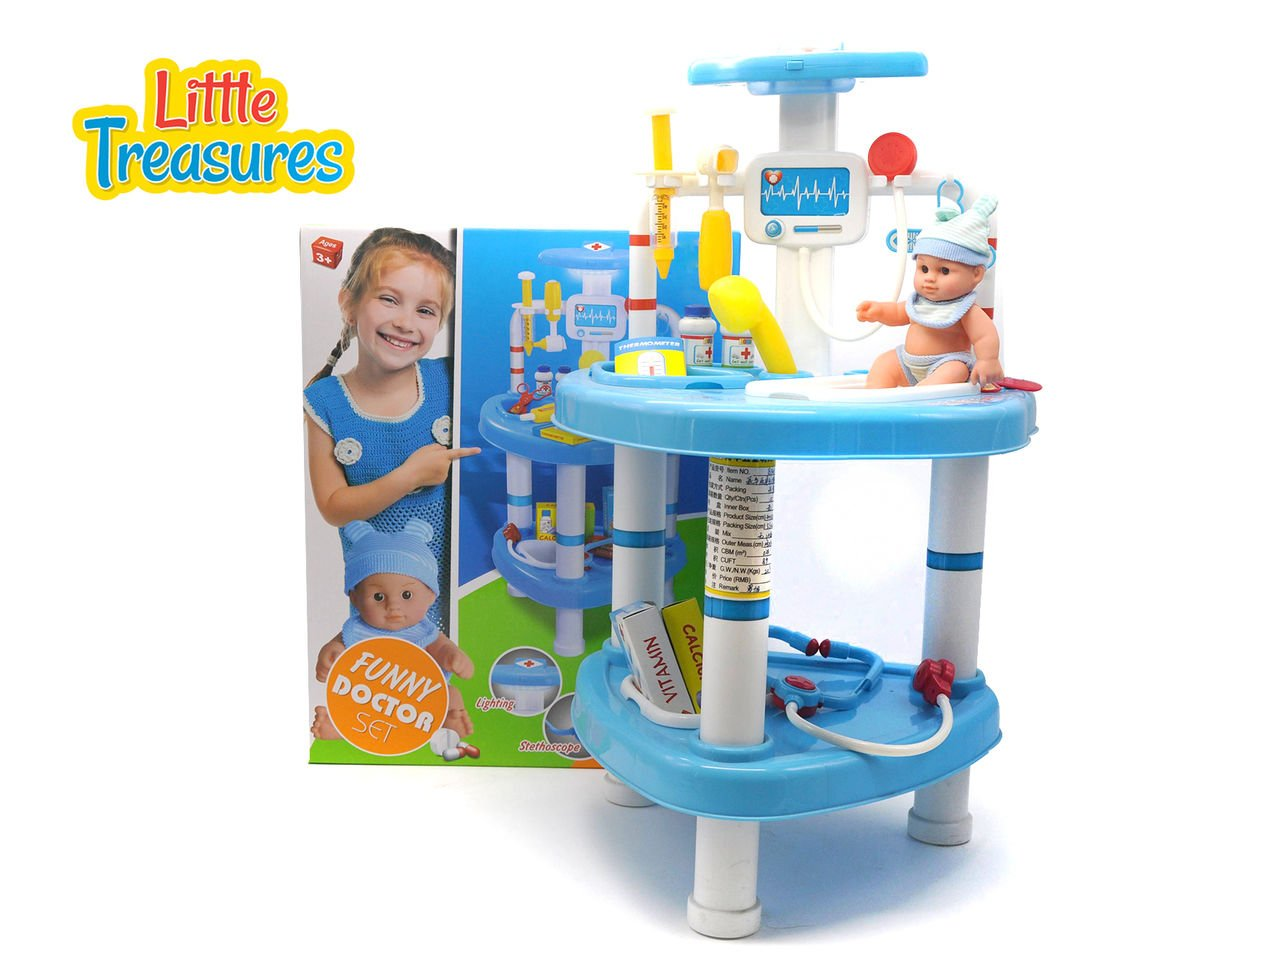 Little Treasures Educational Children's Doctor Set from Complete with Medical Station, Medical Instruments, Supplies, and Baby Doll - 33 Pieces Play Set for Children 3+